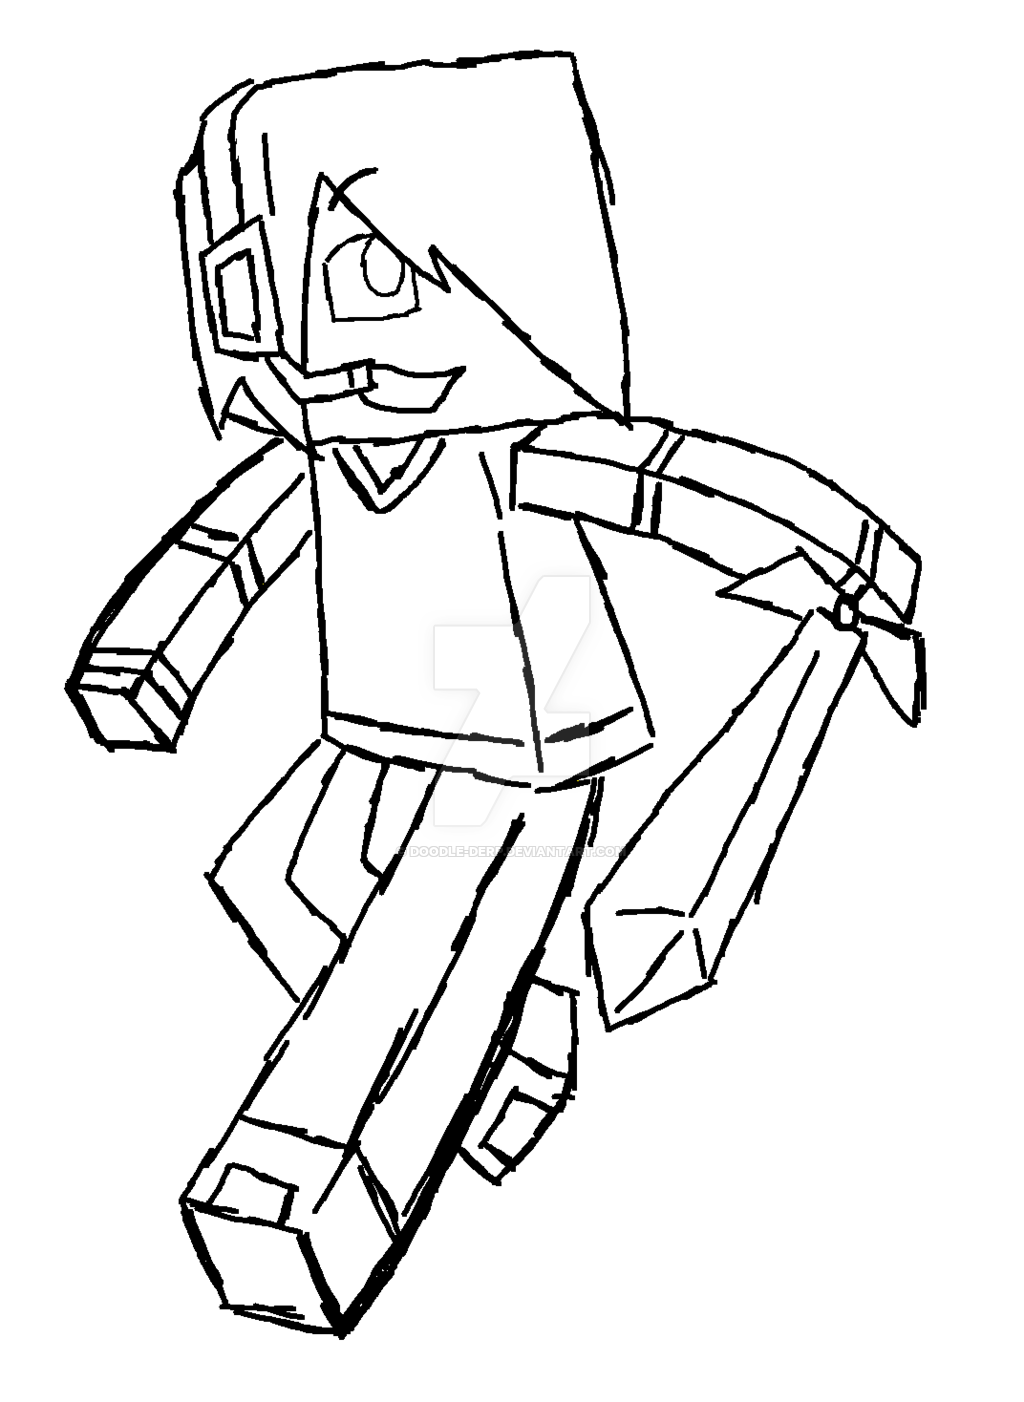 Minecraft skin drawing at getdrawings free for personal use 1024x1402 deadlox sketch c by doodle derp on deviantart maxwellsz